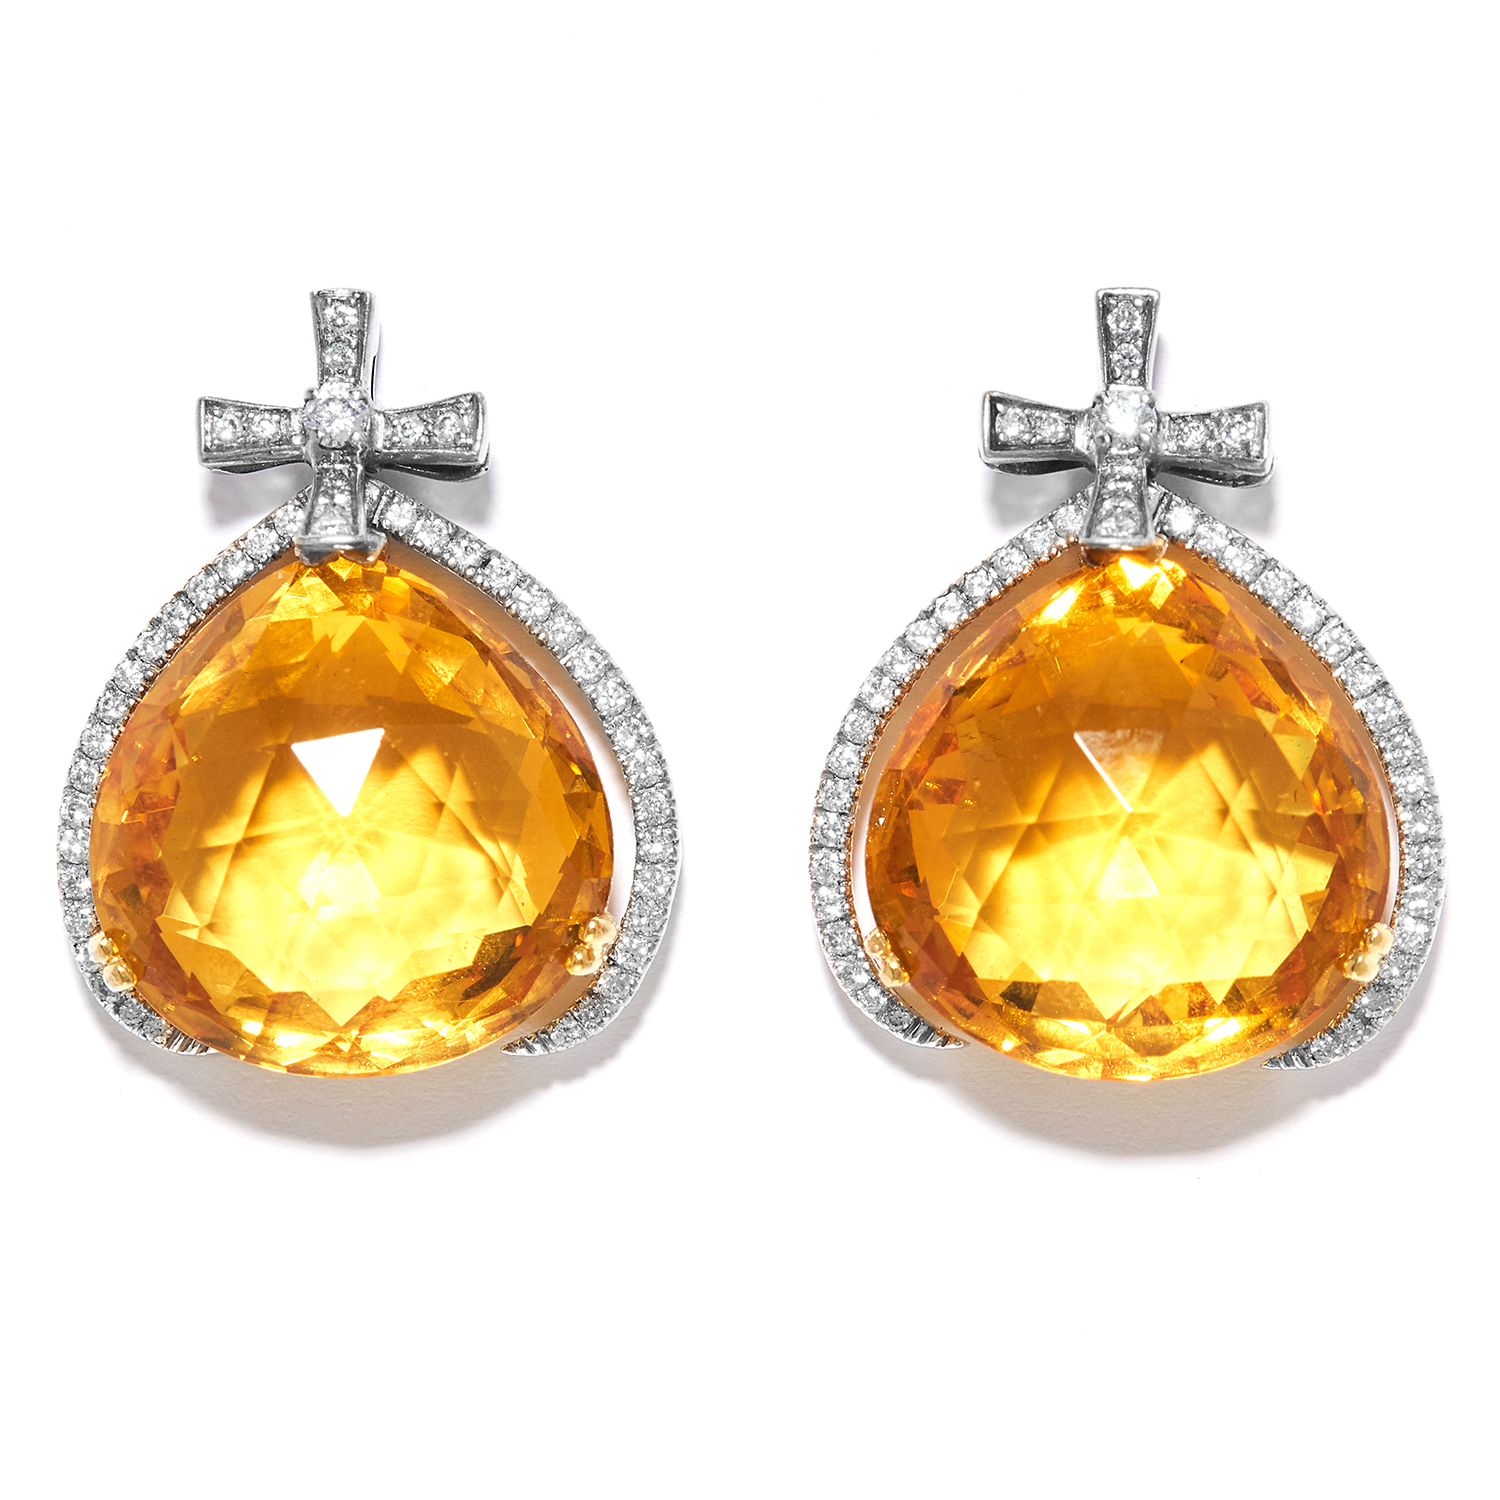 CITRINE AND DIAMOND EARRINGS each comprising of a faceted pear shaped citrines within diamond